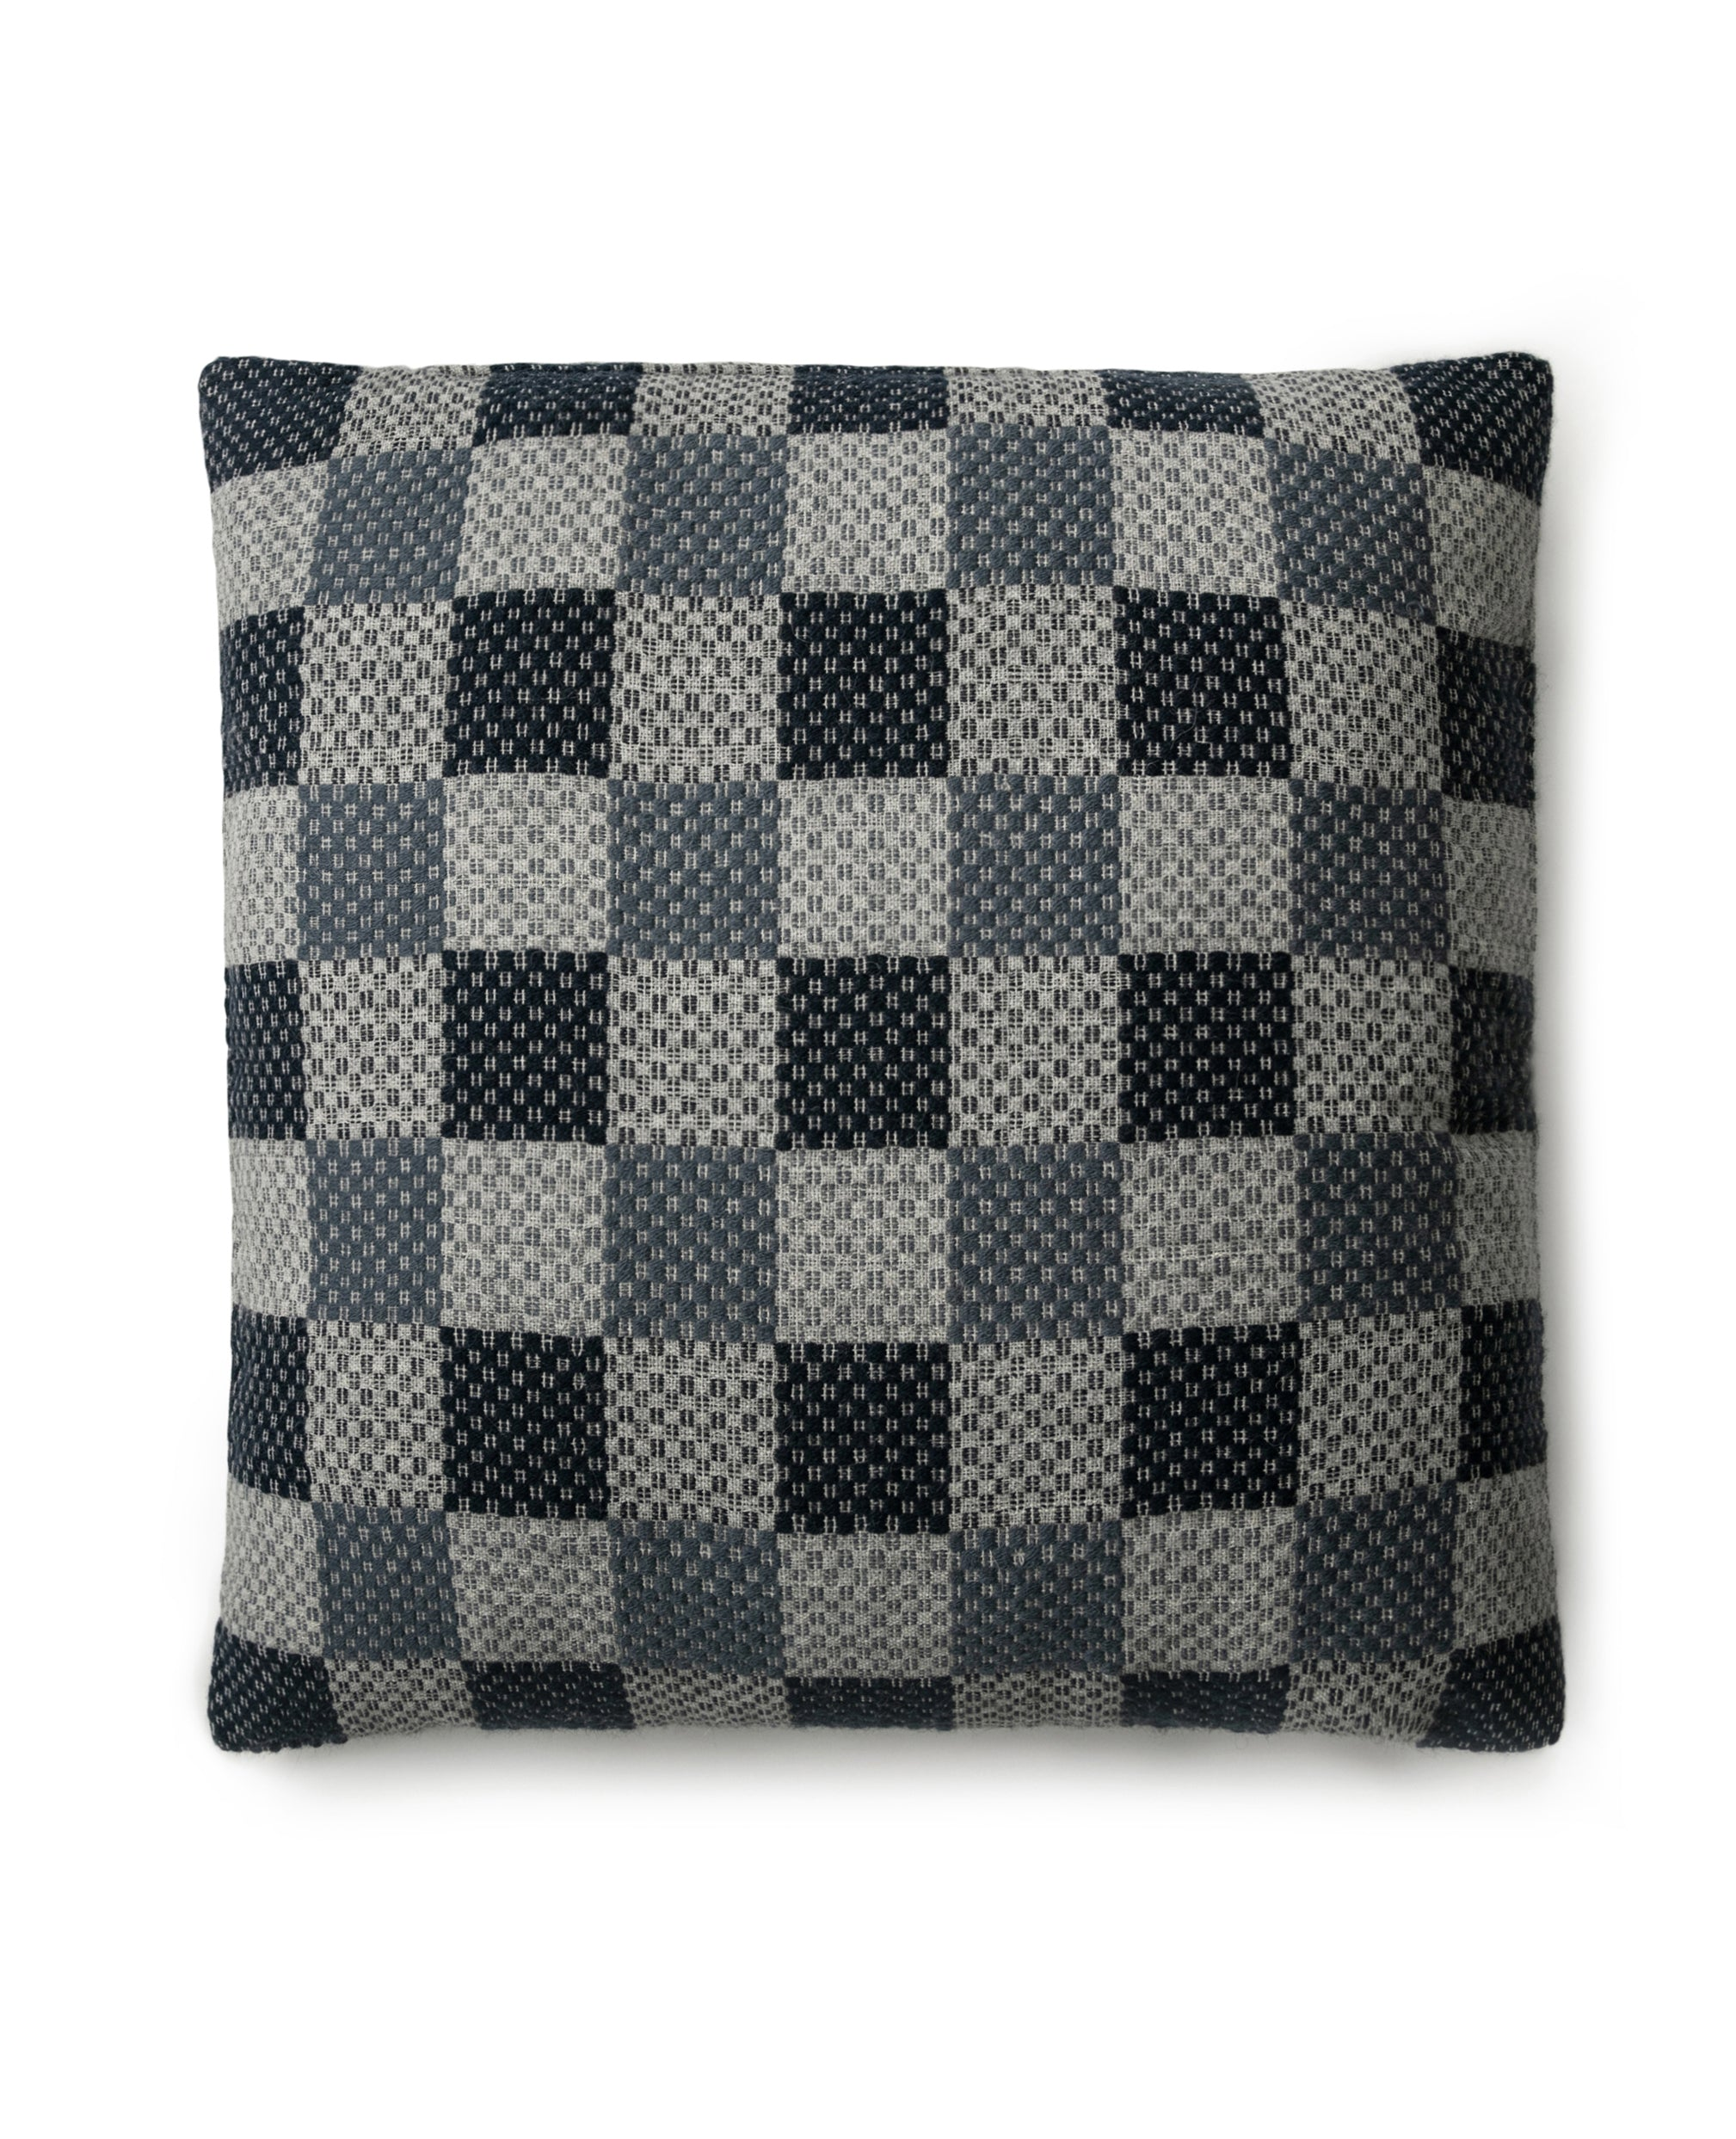 Kin overshot cushion full